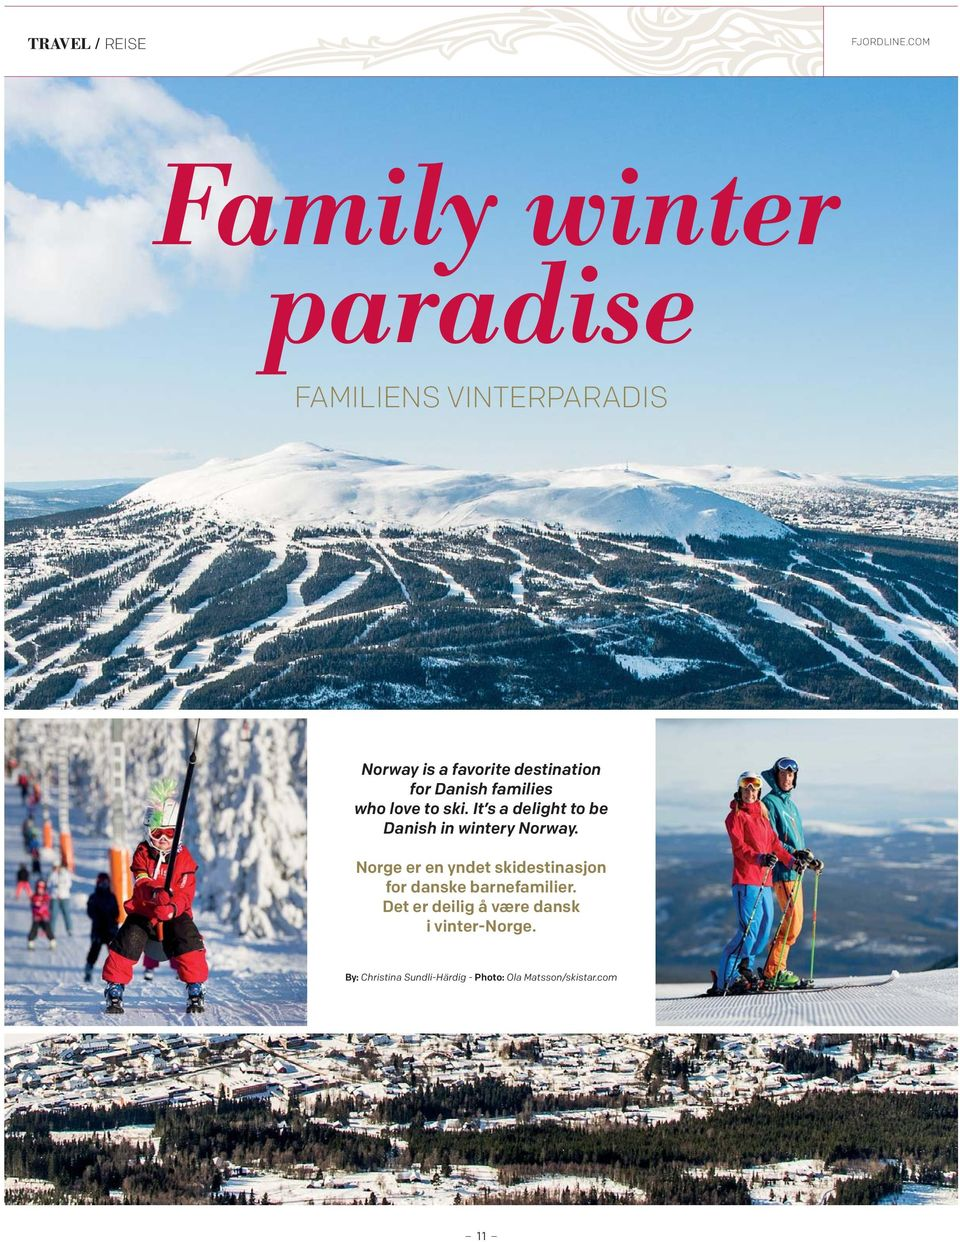 Danish families who love to ski. It s a delight to be Danish in wintery Norway.